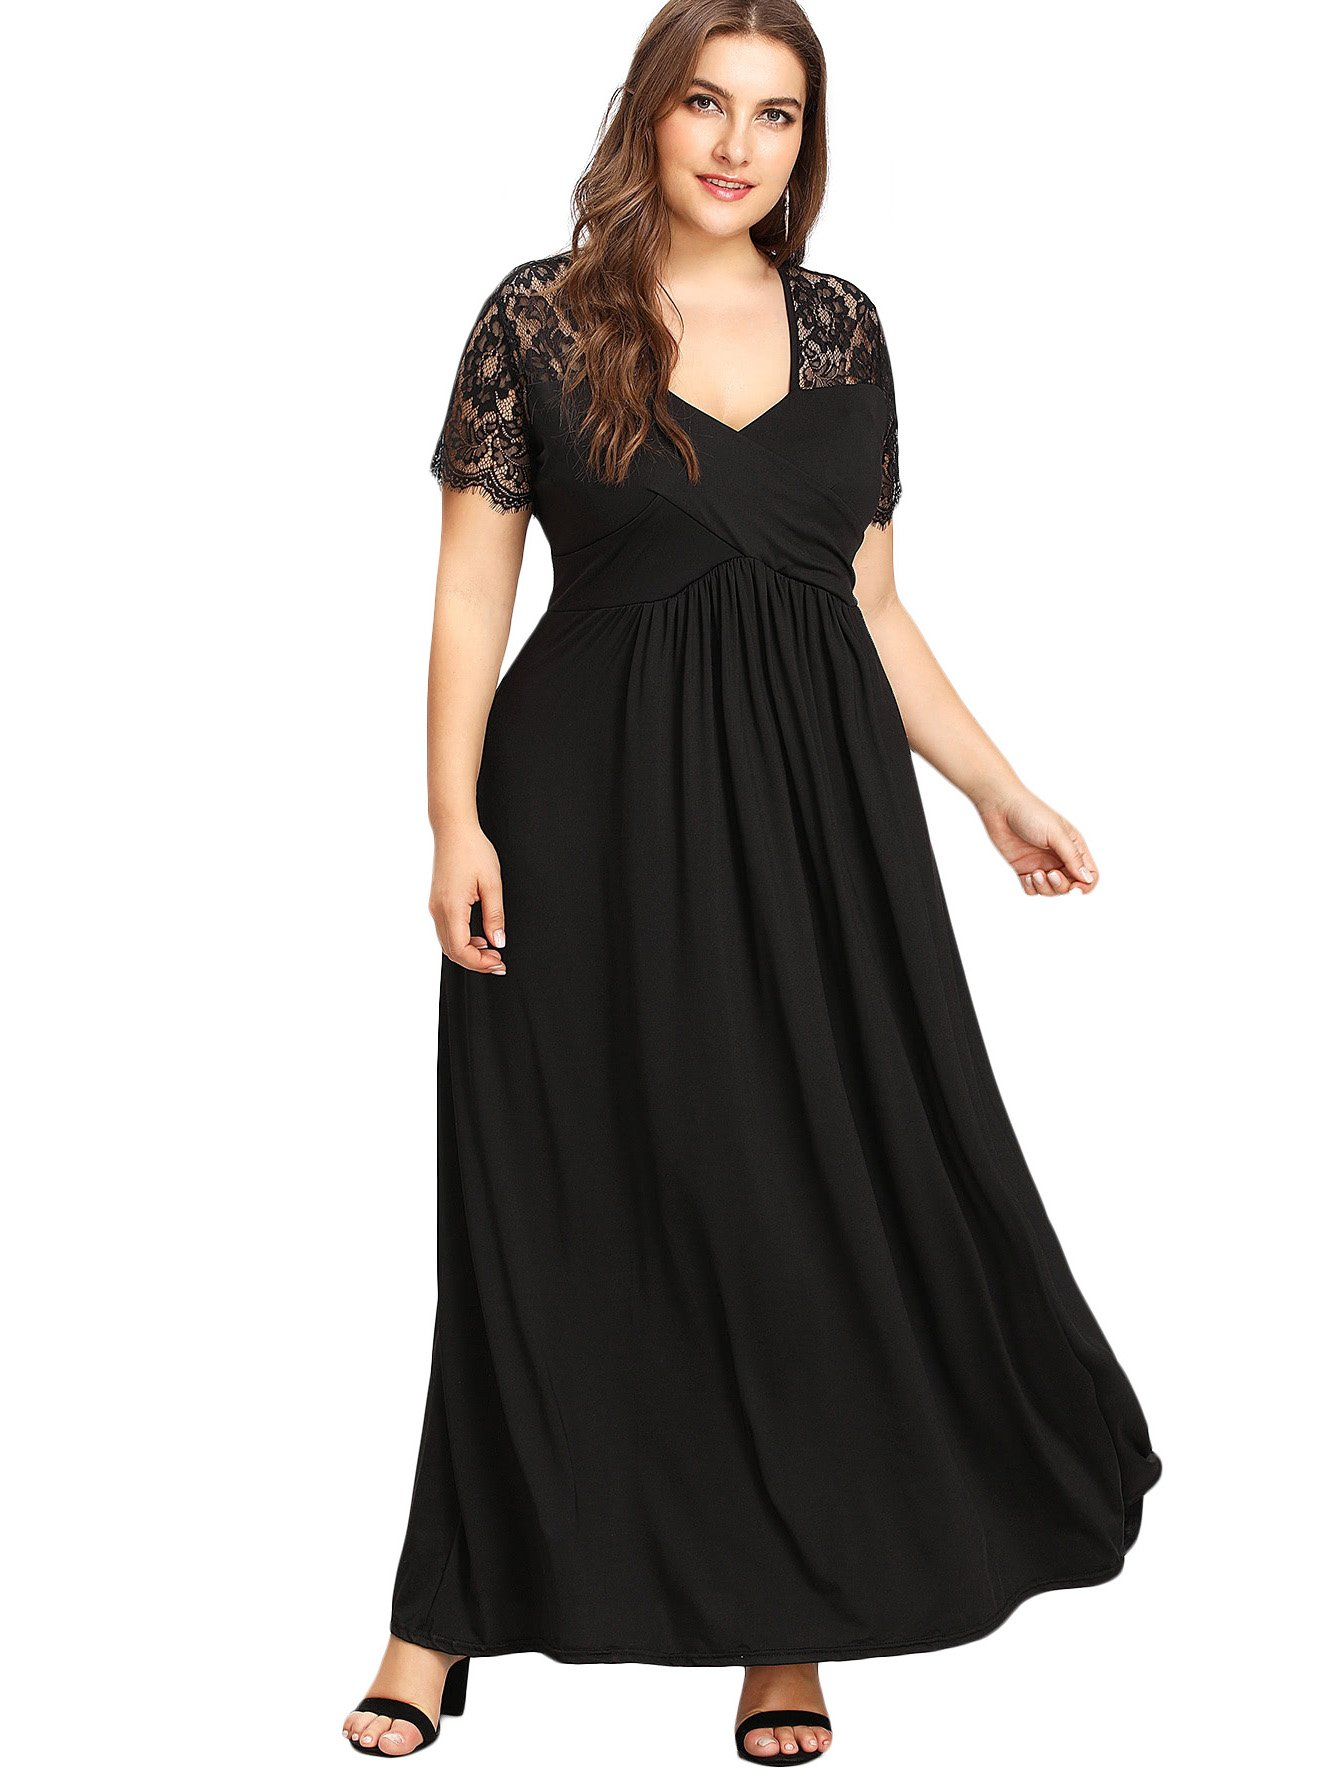 Milumia Plus Size Lace Dress,Square Neck Empire Waist Fit and Flare Flowy Short Sleeves Solid Color Ruched Maxi Dress 4XL